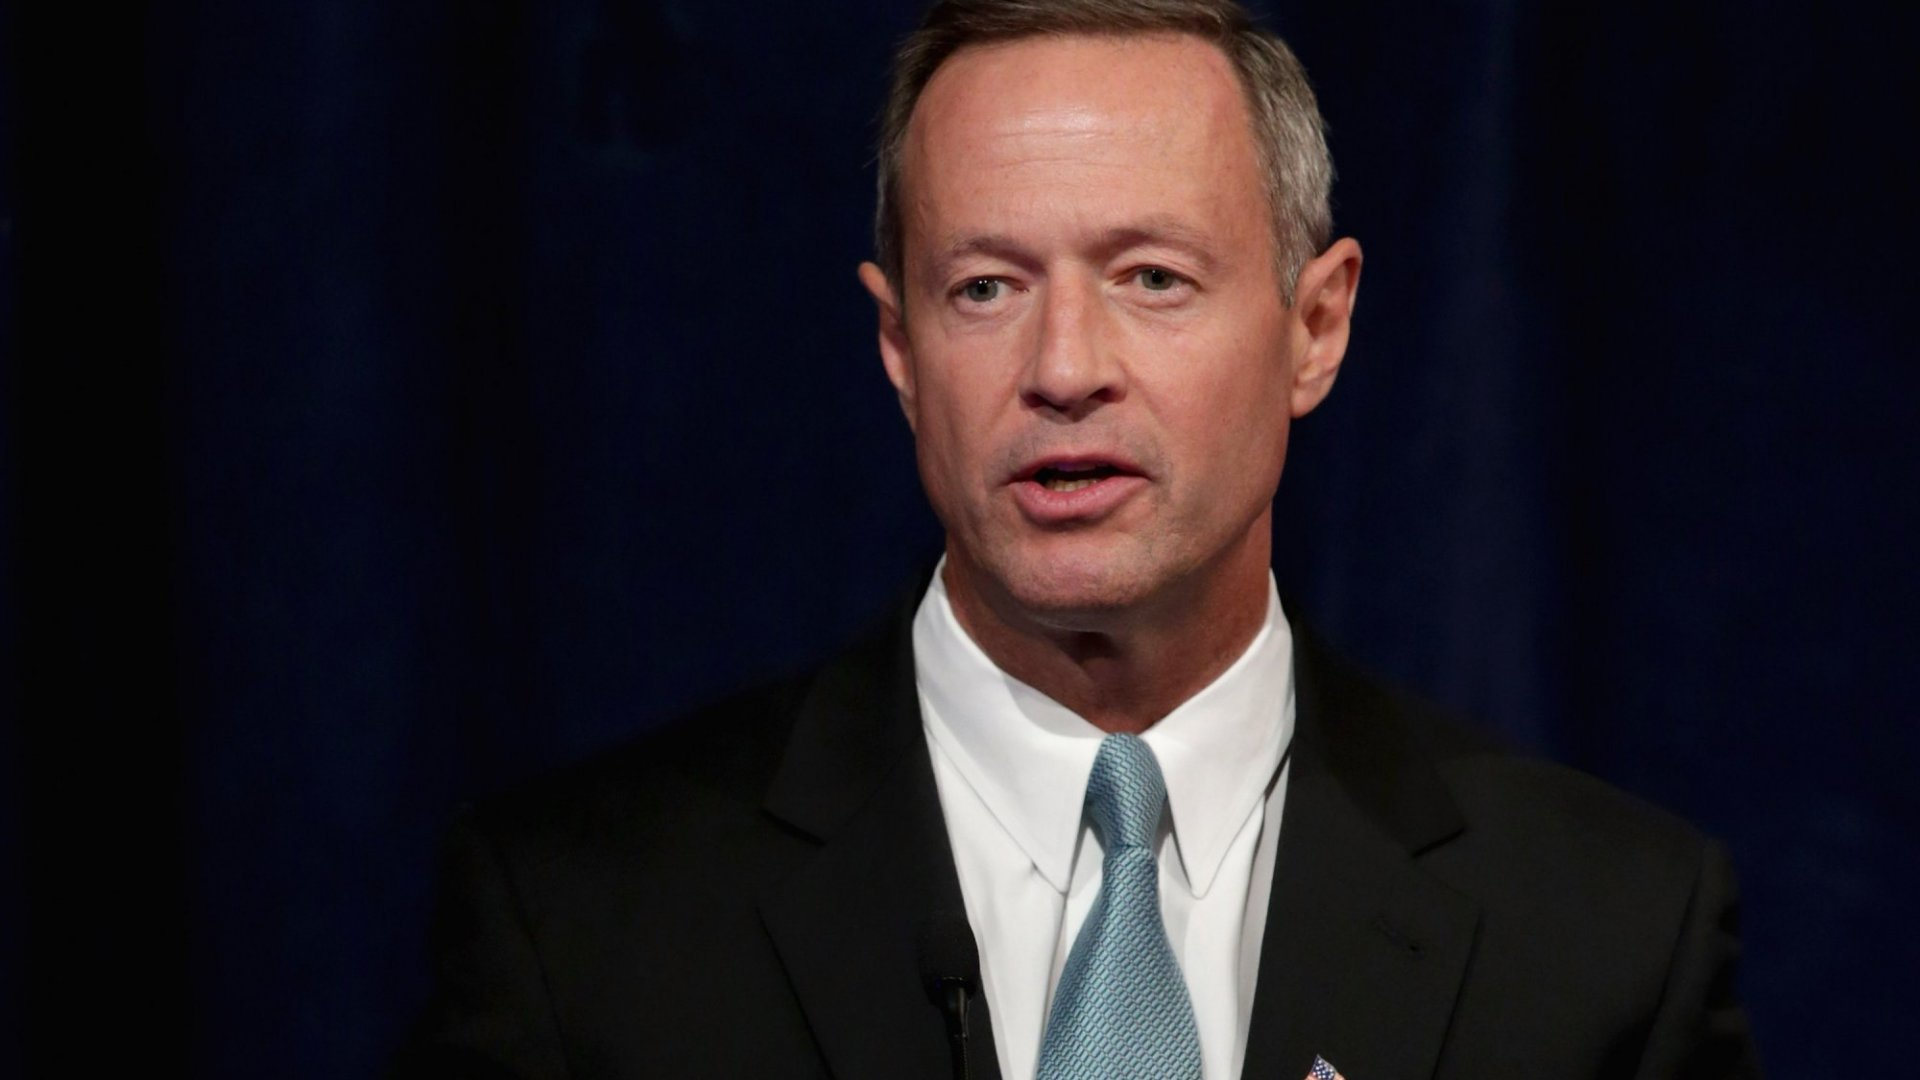 Two-term Maryland Governor Martin O'Malley will run on the Democratic ticket in the 2016 presidential primary.